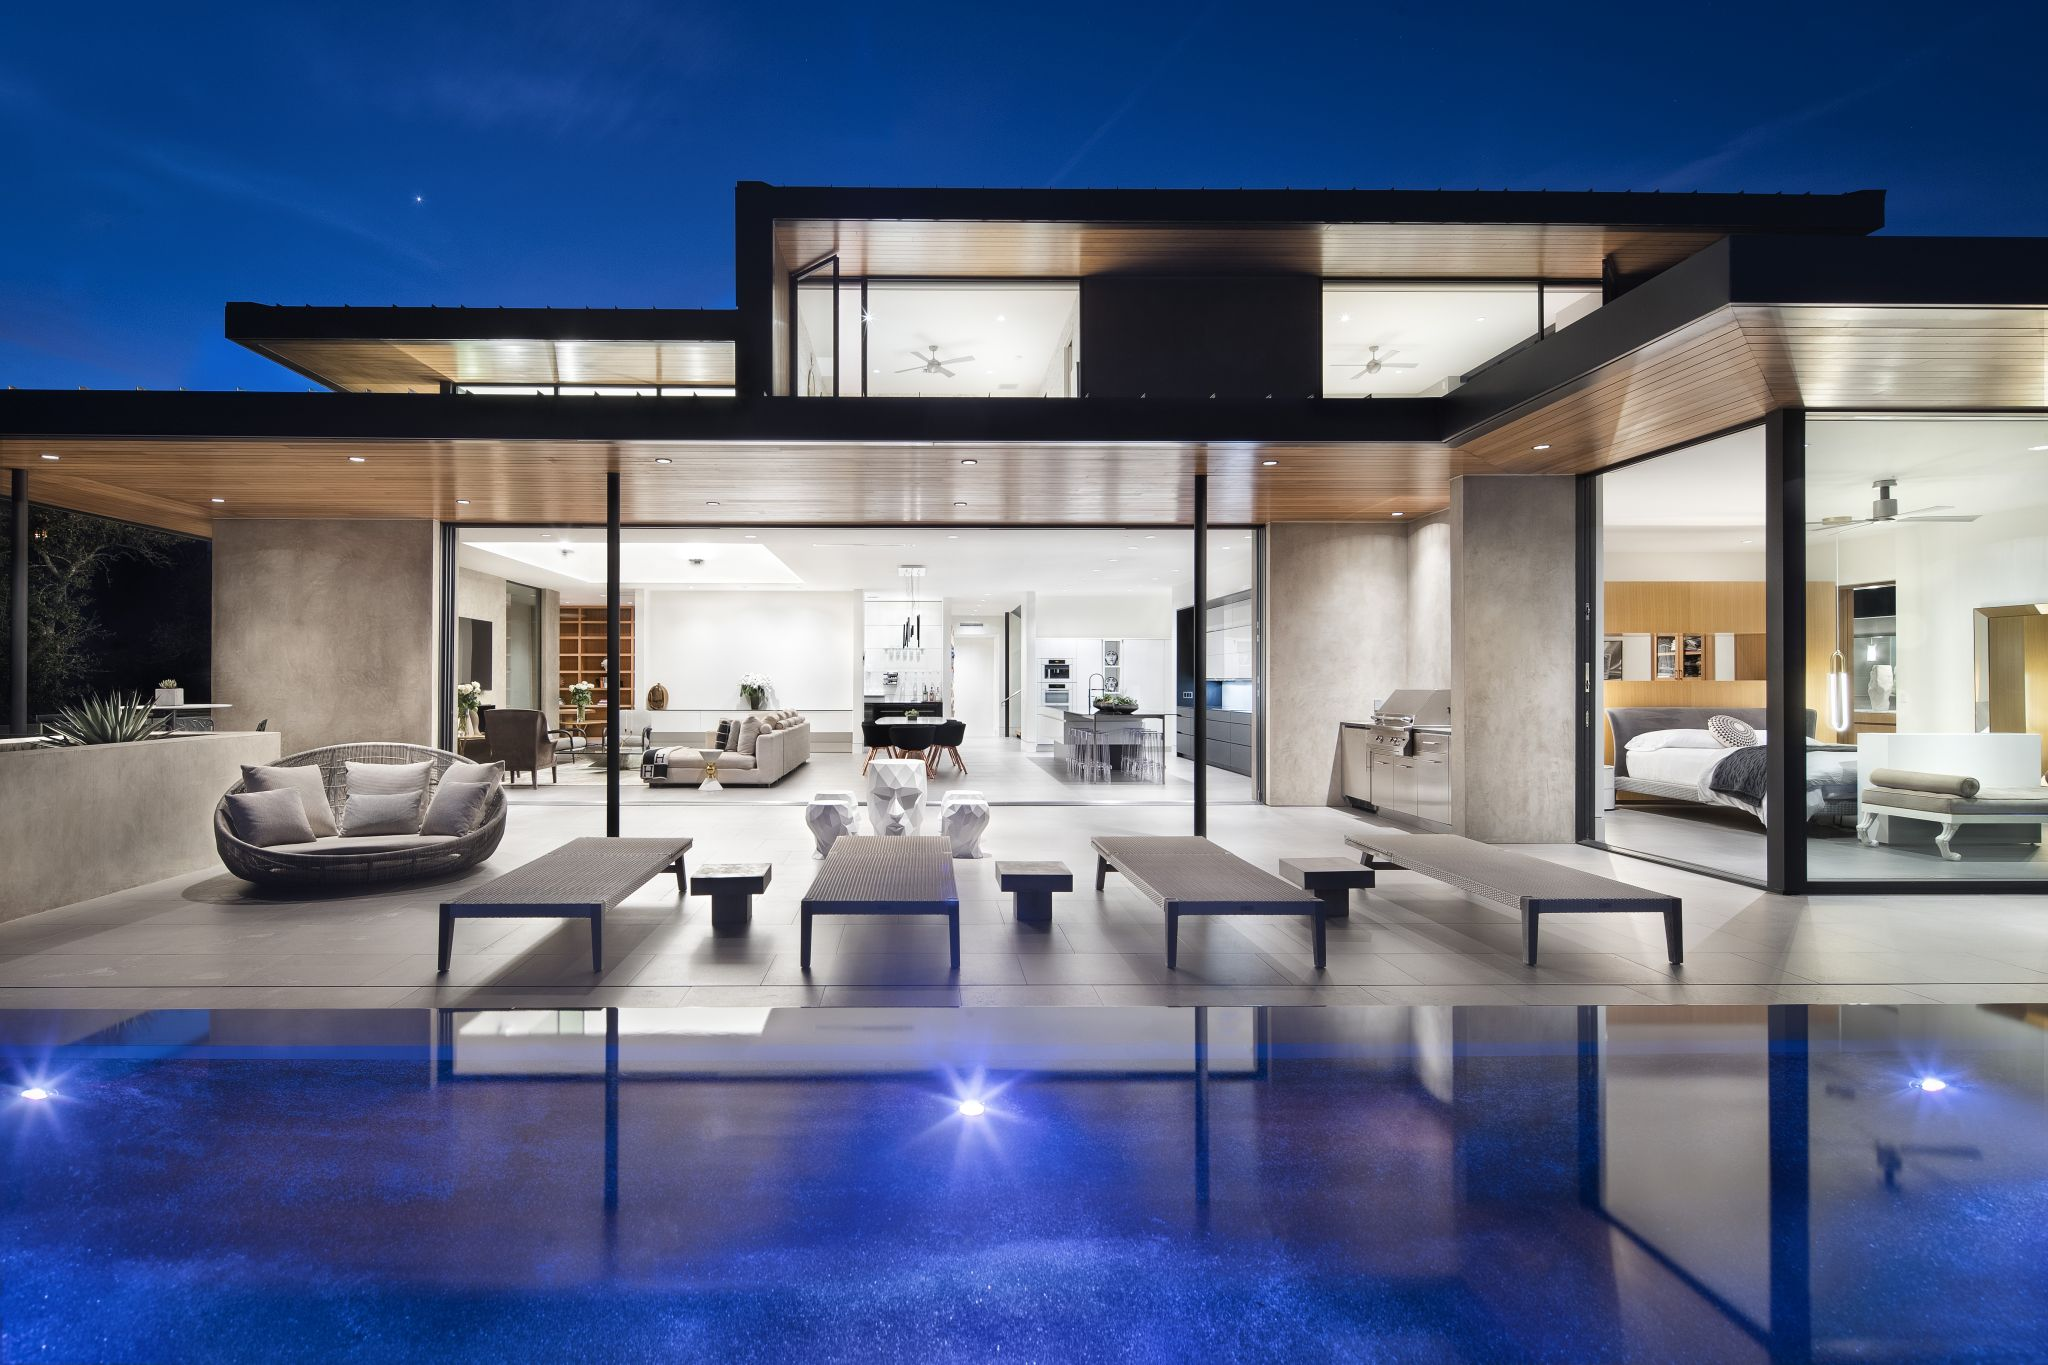 Austin 39 Waterfall House 39 On The Market For 6 8 Million